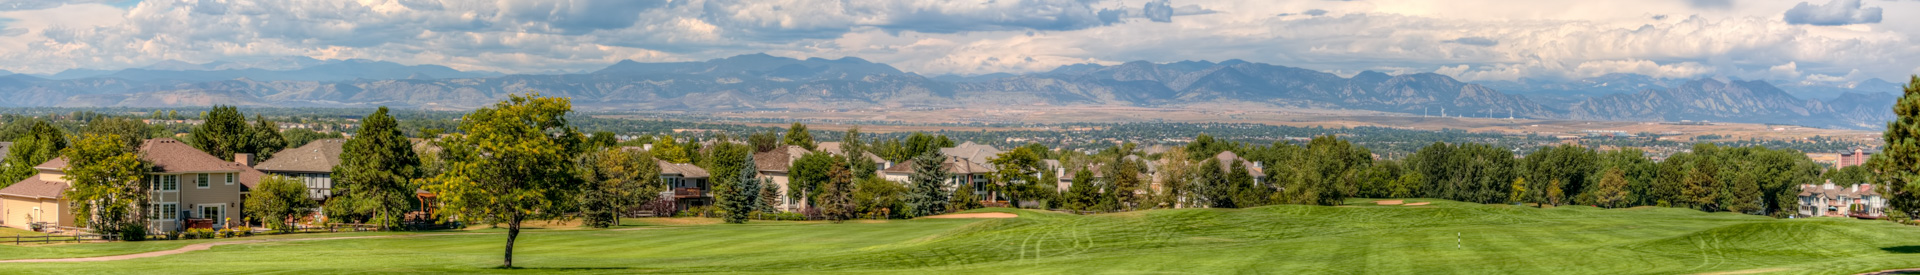 0922 Westminster Legacy Ridge Golf Course Summer 2016 Panorama 5TMDE Edit E 1920 - Real Estate Video